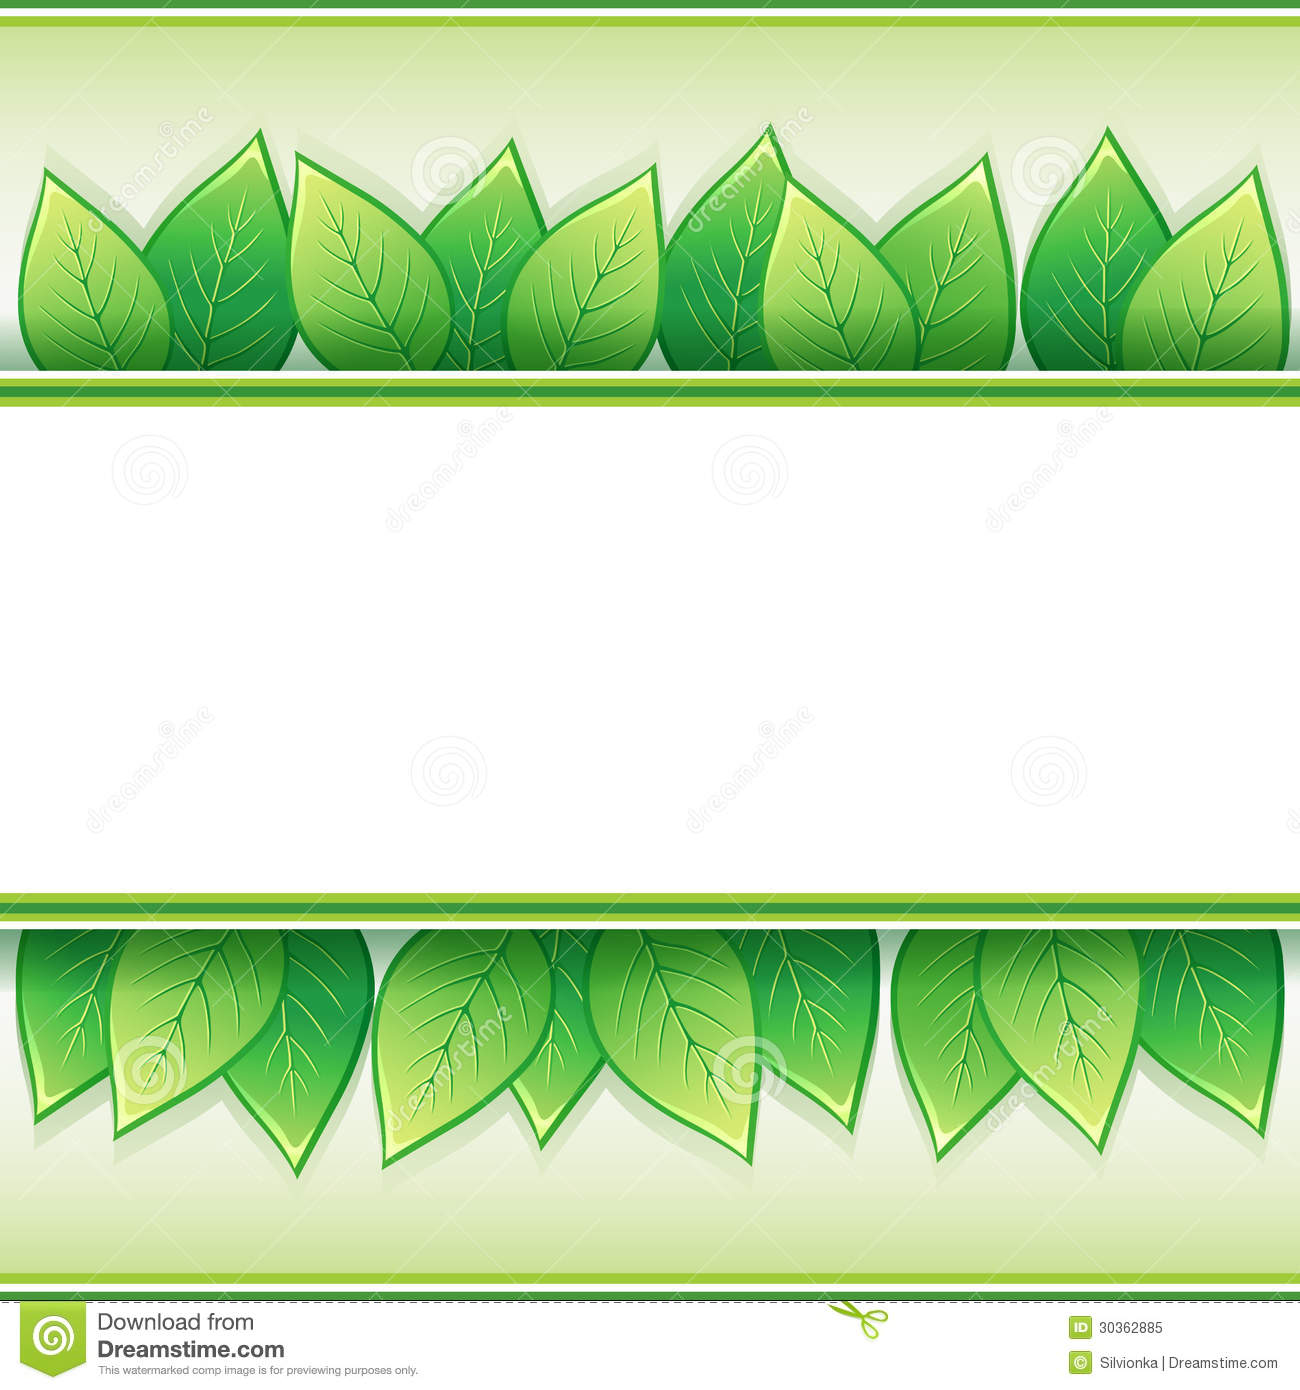 greener place essay Essay: how to make your school green how to make your school green my school is a very beautiful and ideal place for students to study and live in.